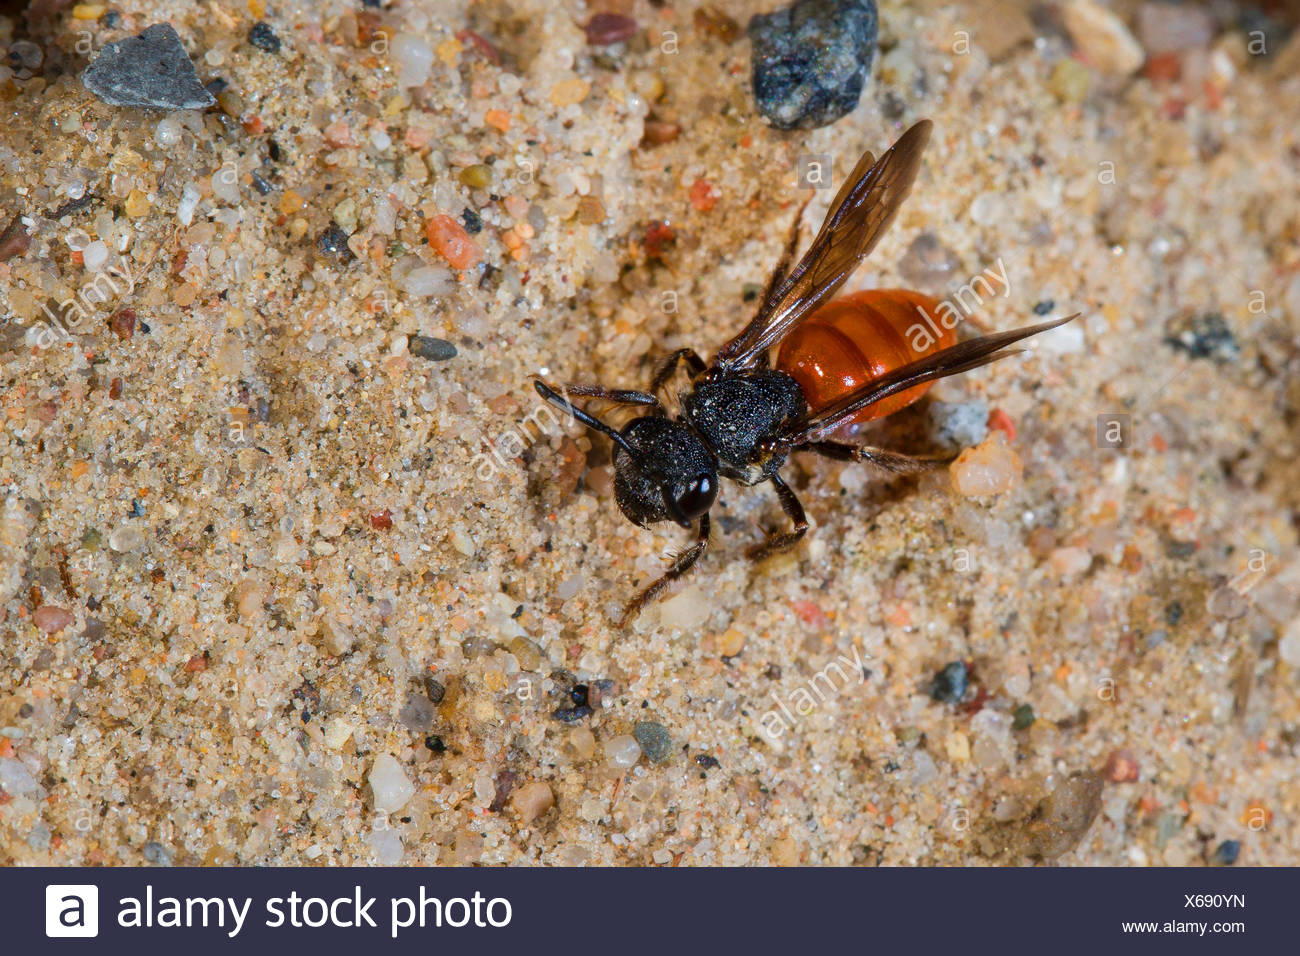 Sweat bee, Halictid Bee (Sphecodes albilabris, Sphecodes fuscipennis), on sandy ground, Germany Stock Photo